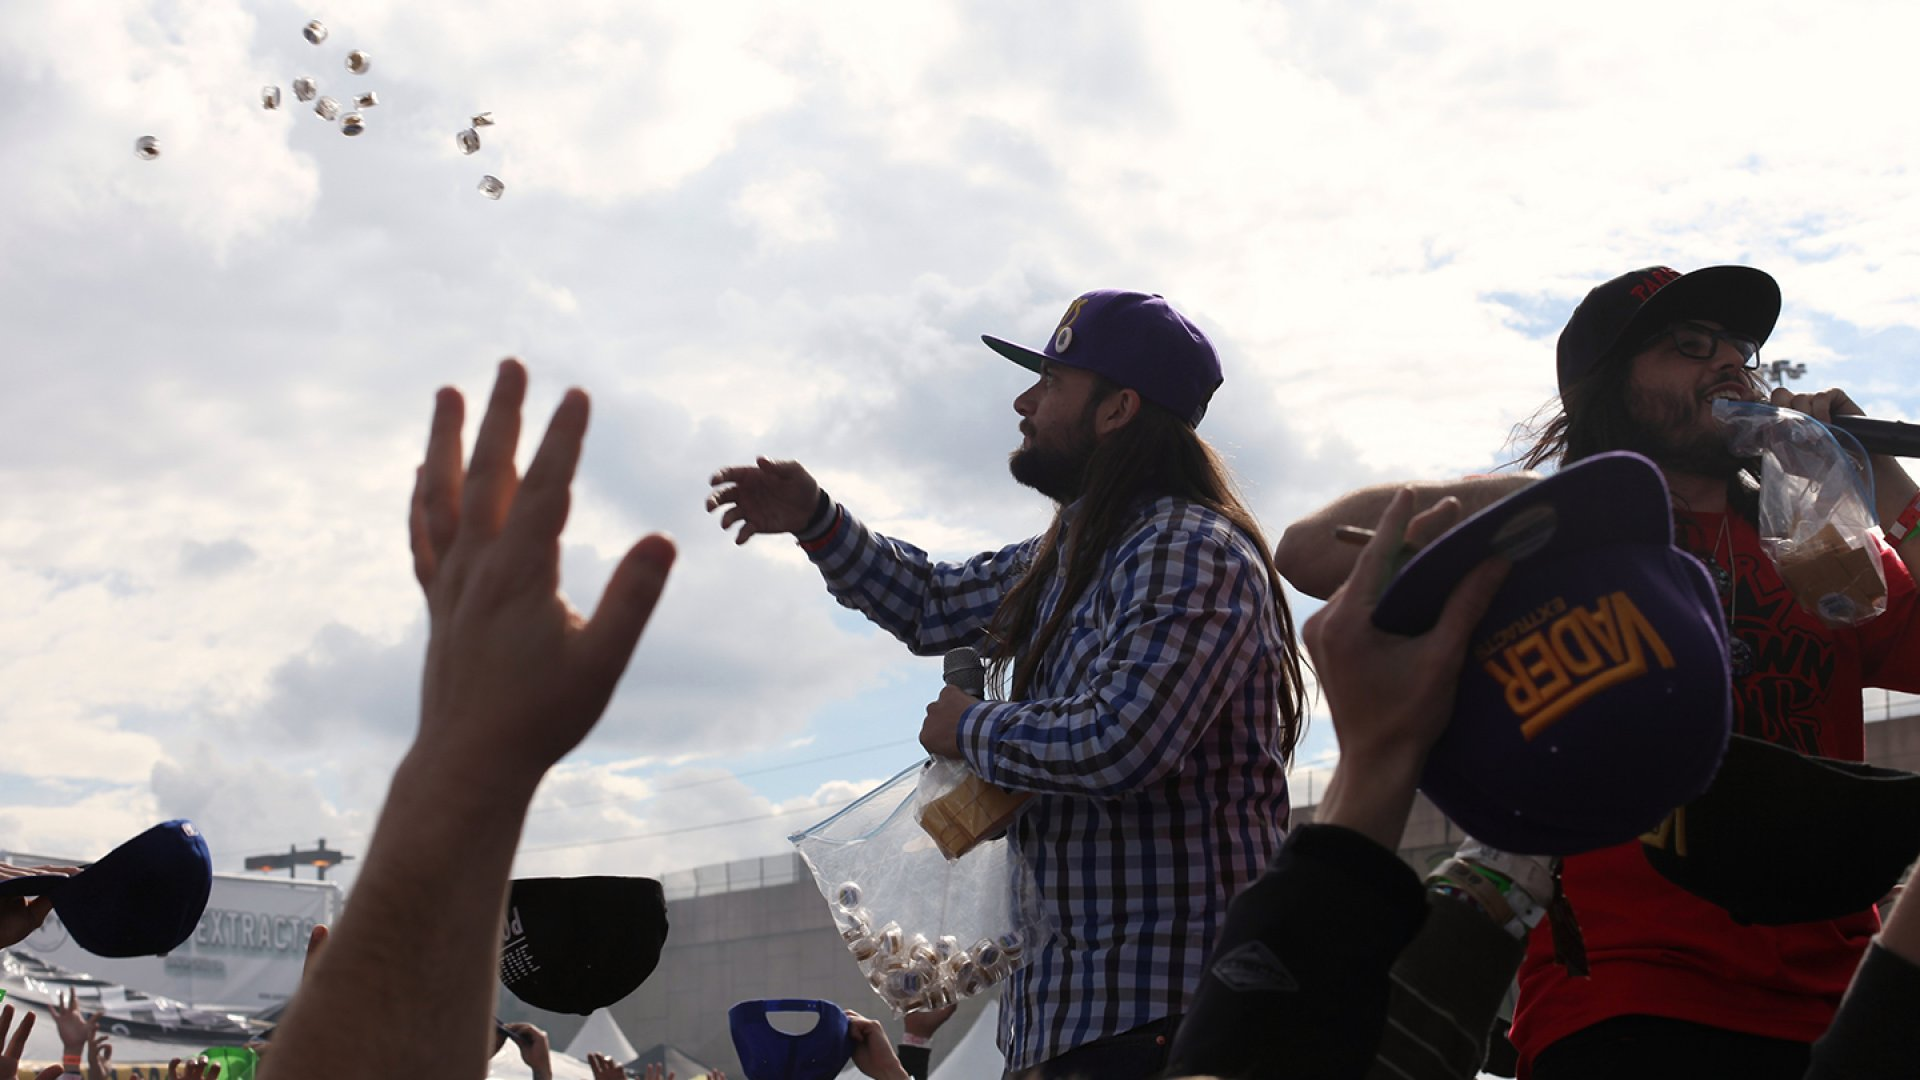 Local law enforcement opposed an event permit for the U.S. Cannabis Cup in Denver this year due to the number of vendors giving away free samples of cannabis and cannabis products.